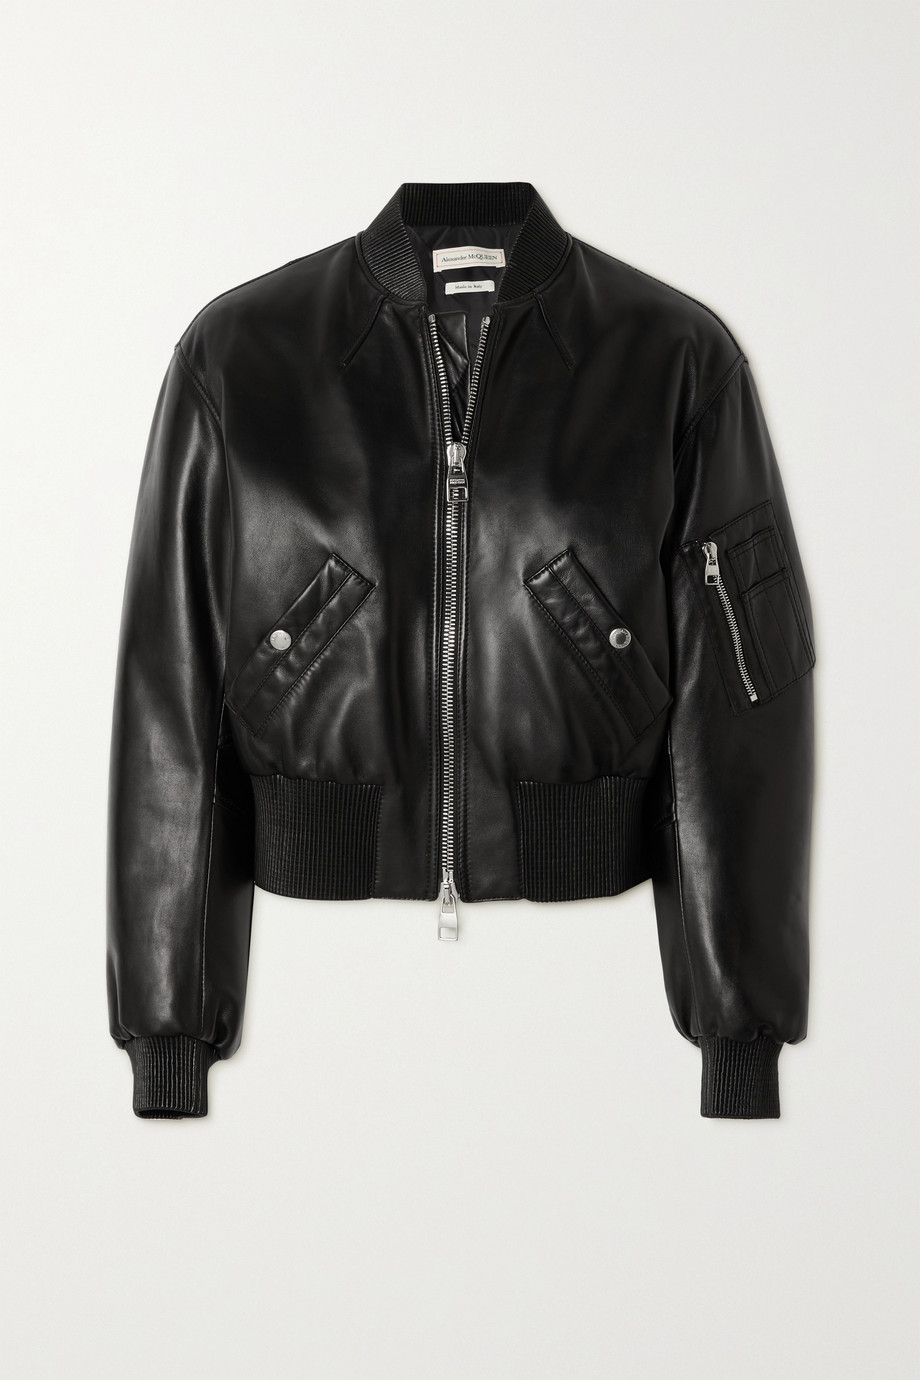 Alexander McQueen Cropped leather bomber jacket